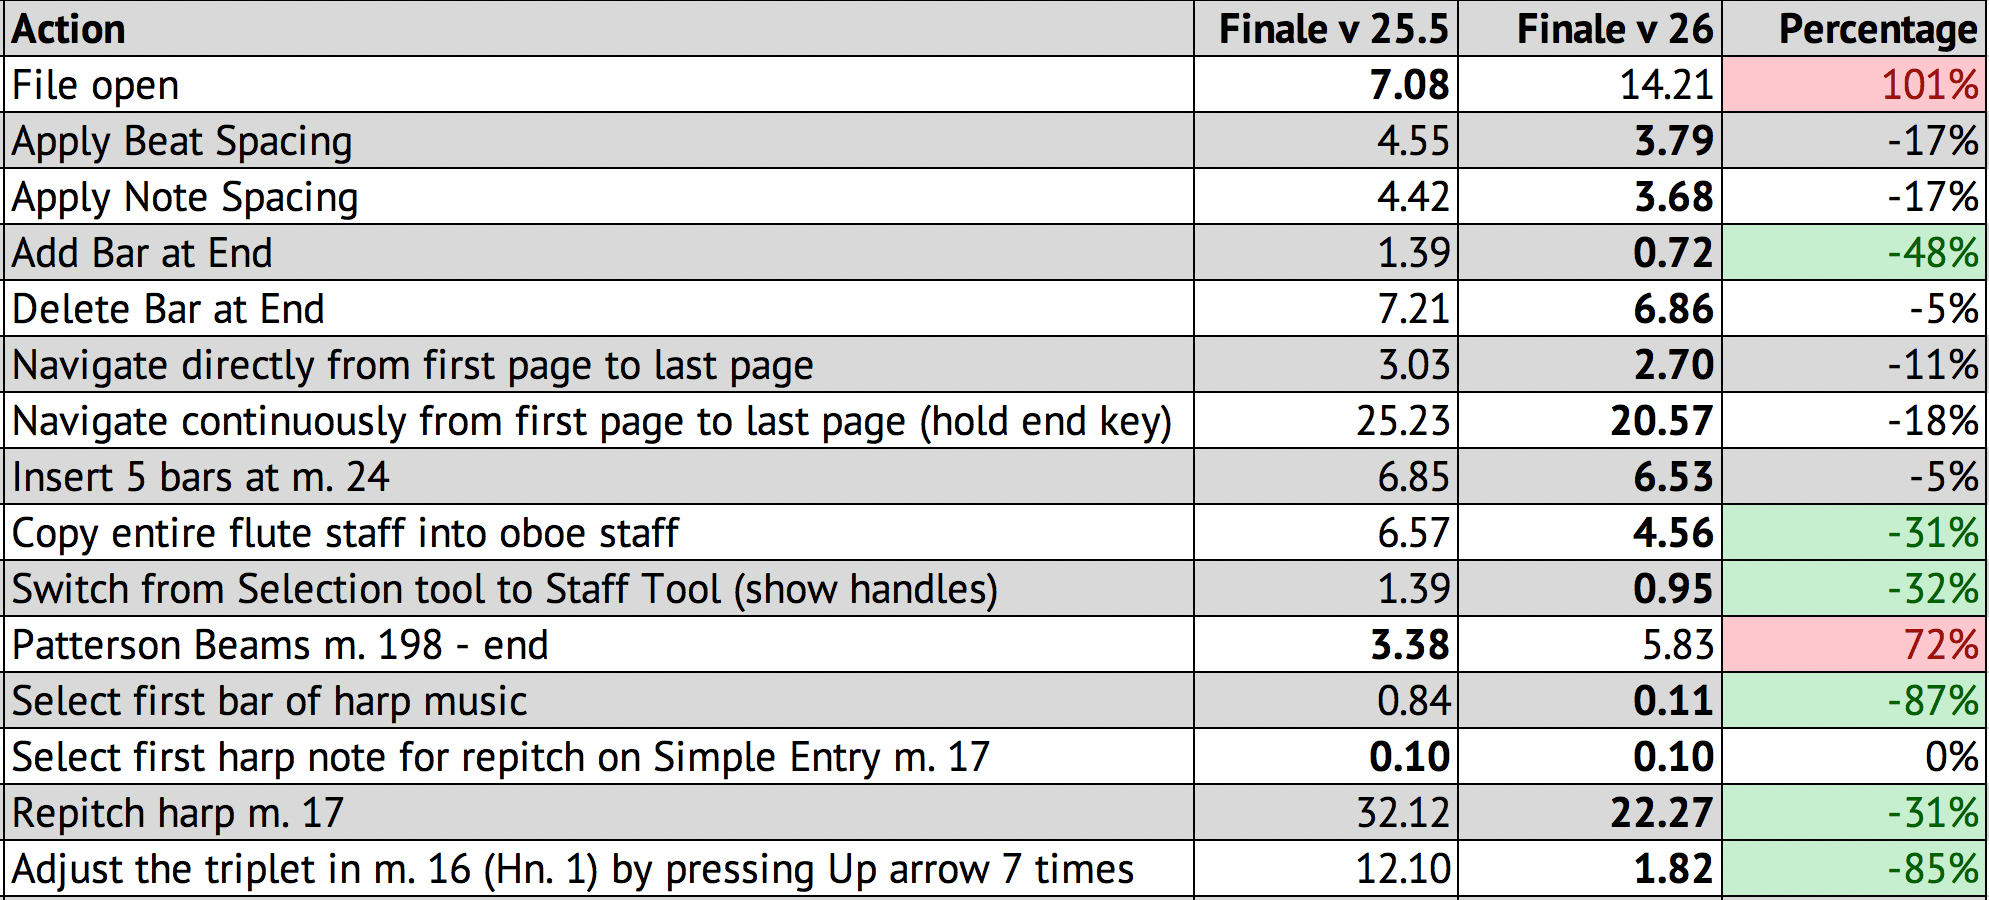 Finale version 26 review - Scoring Notes